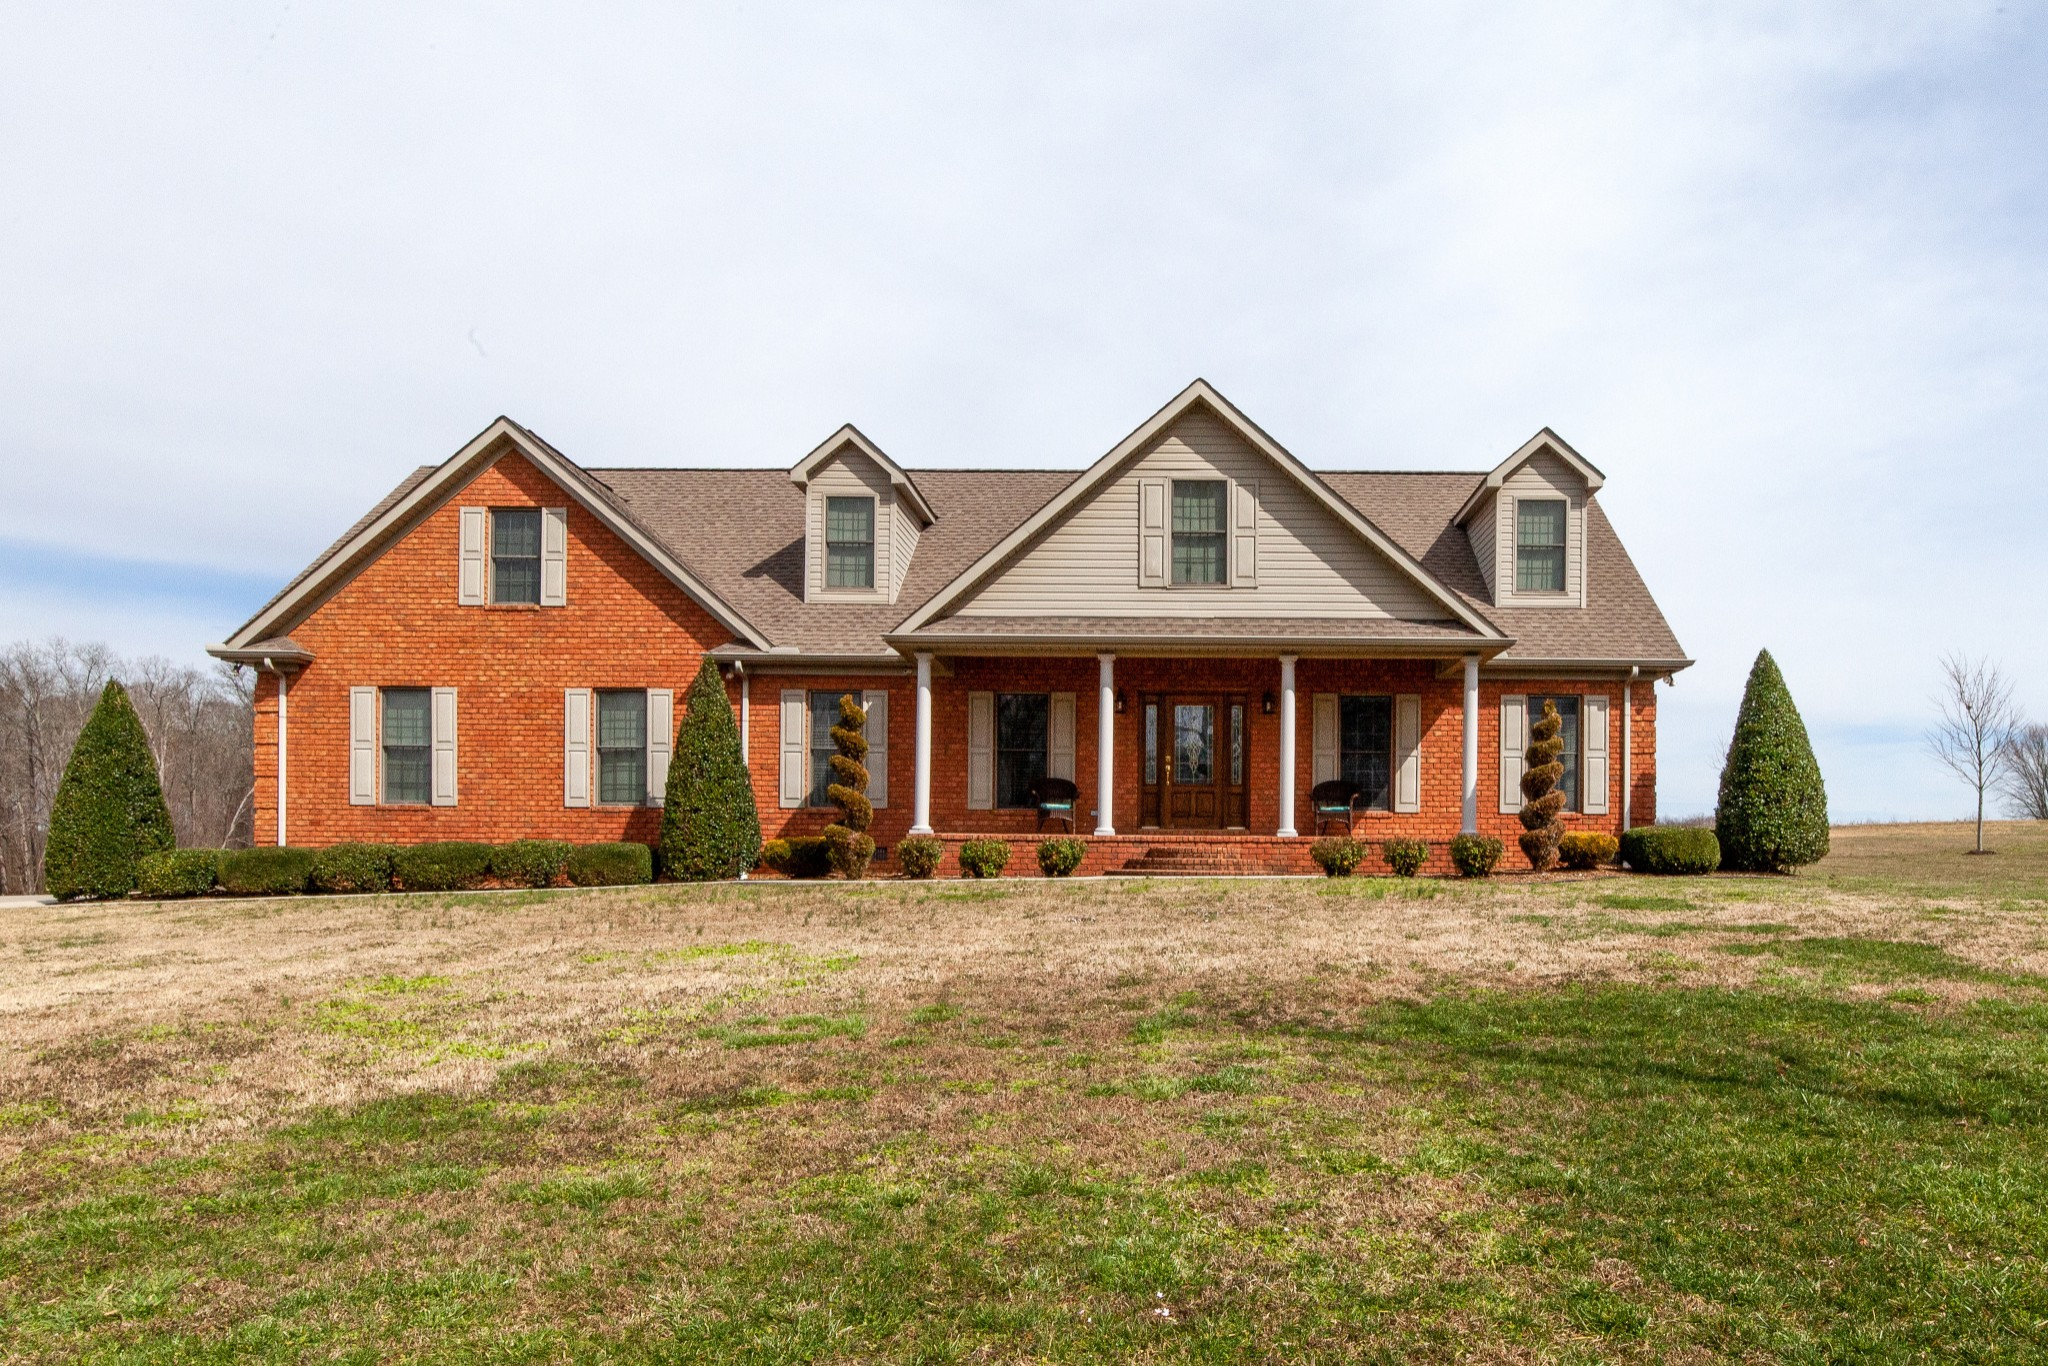 210 Game Ridge Rd, Smithville, TN 37166 - Smithville, TN real estate listing